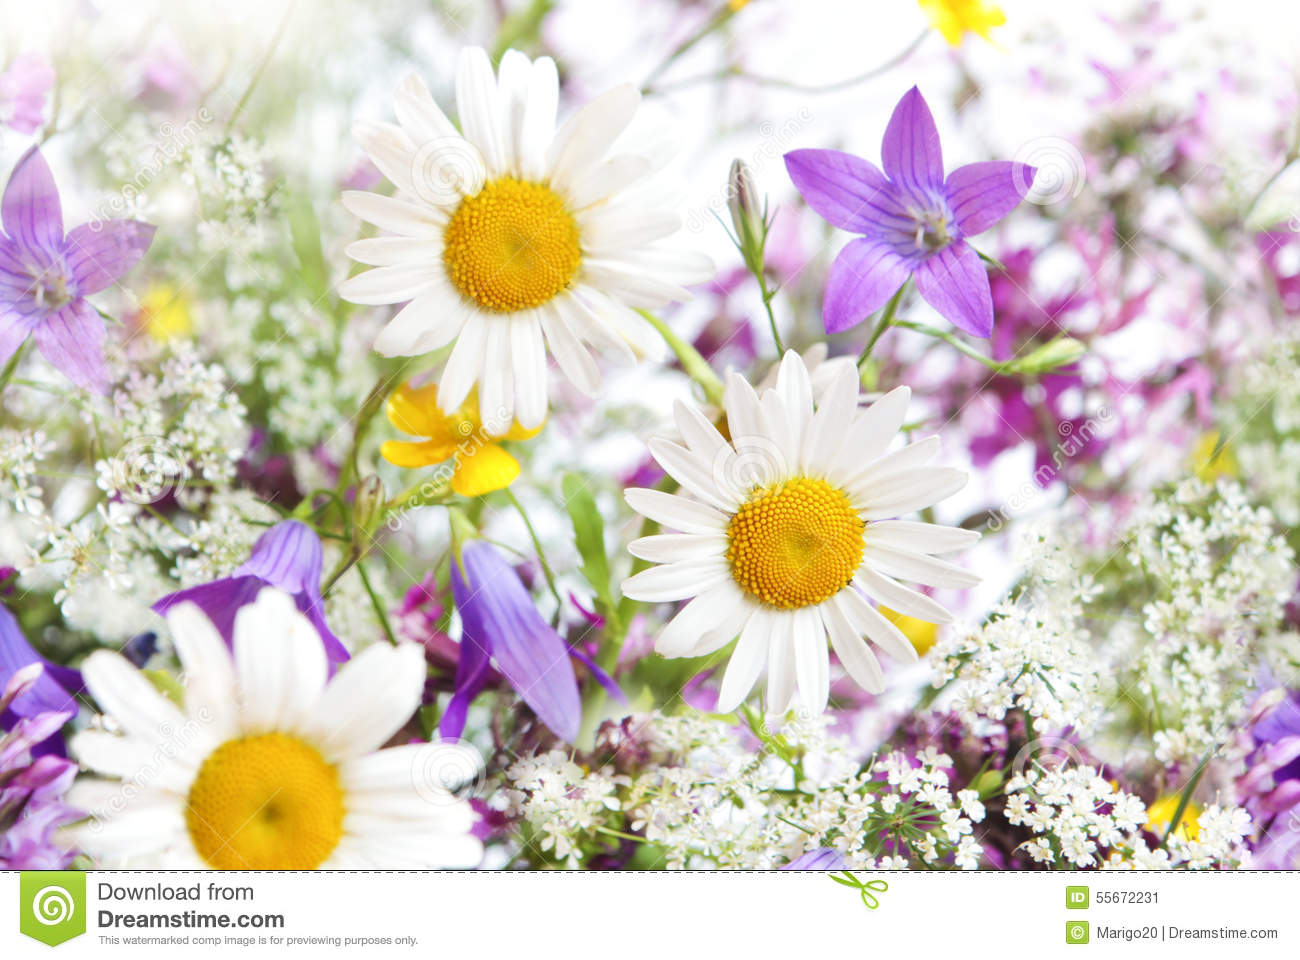 Colorful Daisies In A Field | www.imgkid.com - The Image ...